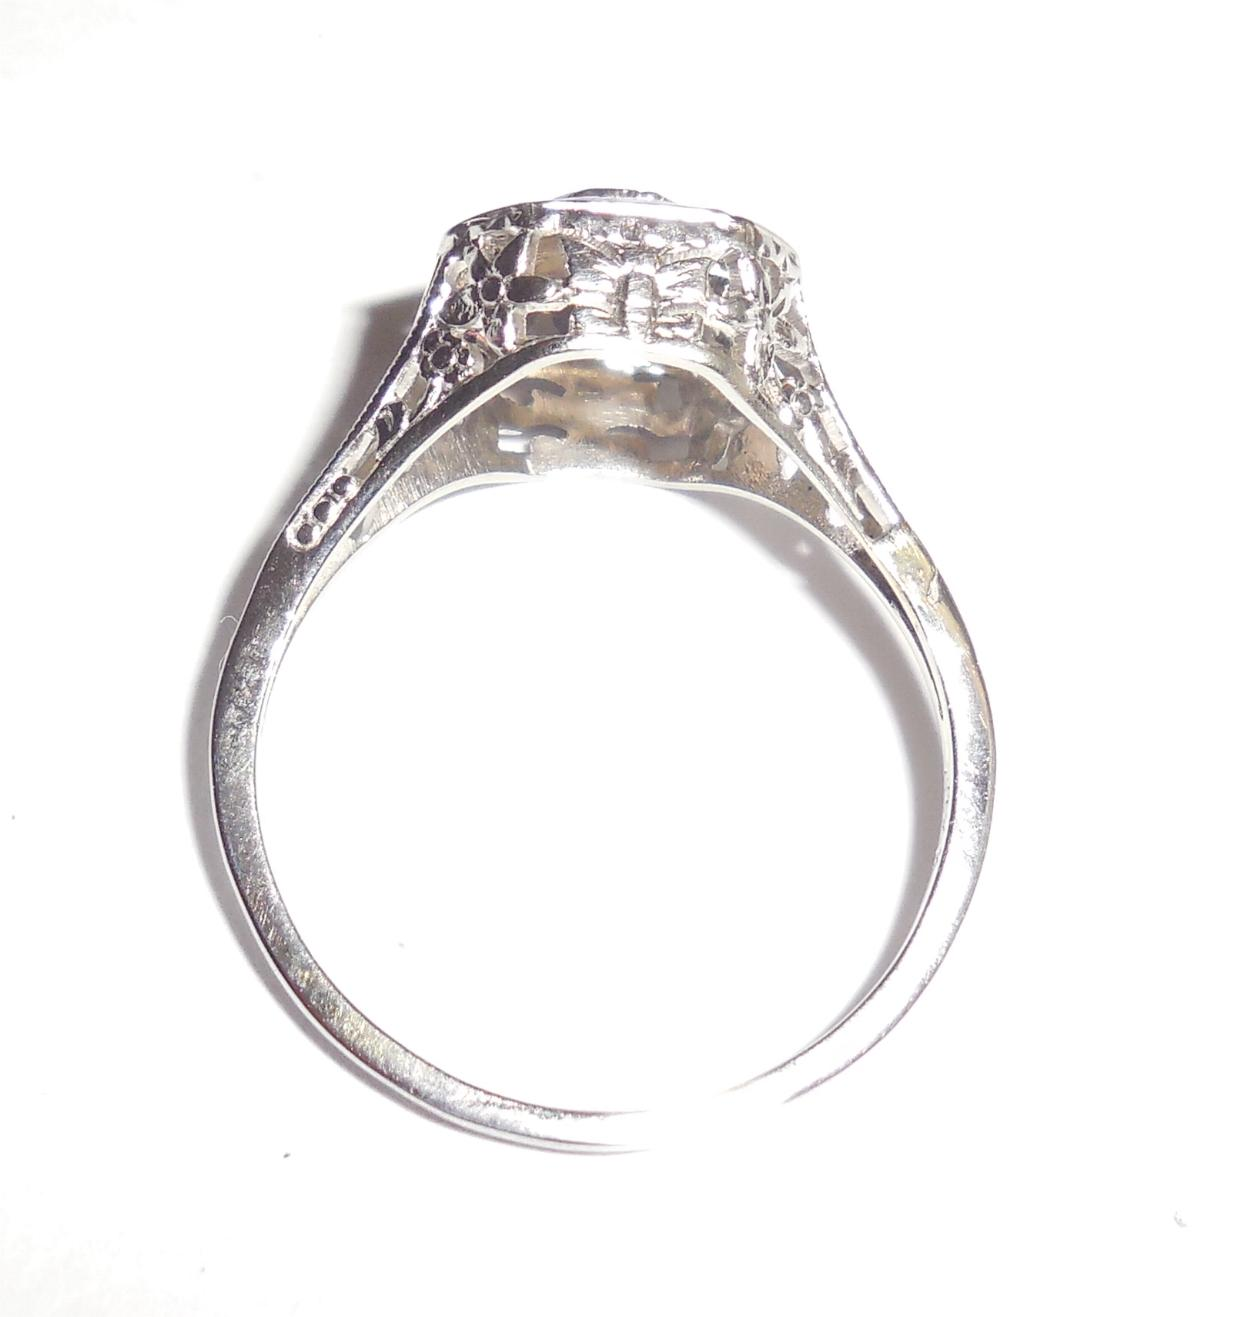 Antique Edwardian Art Deco 18k Gold Diamond Filigree Insects Ring